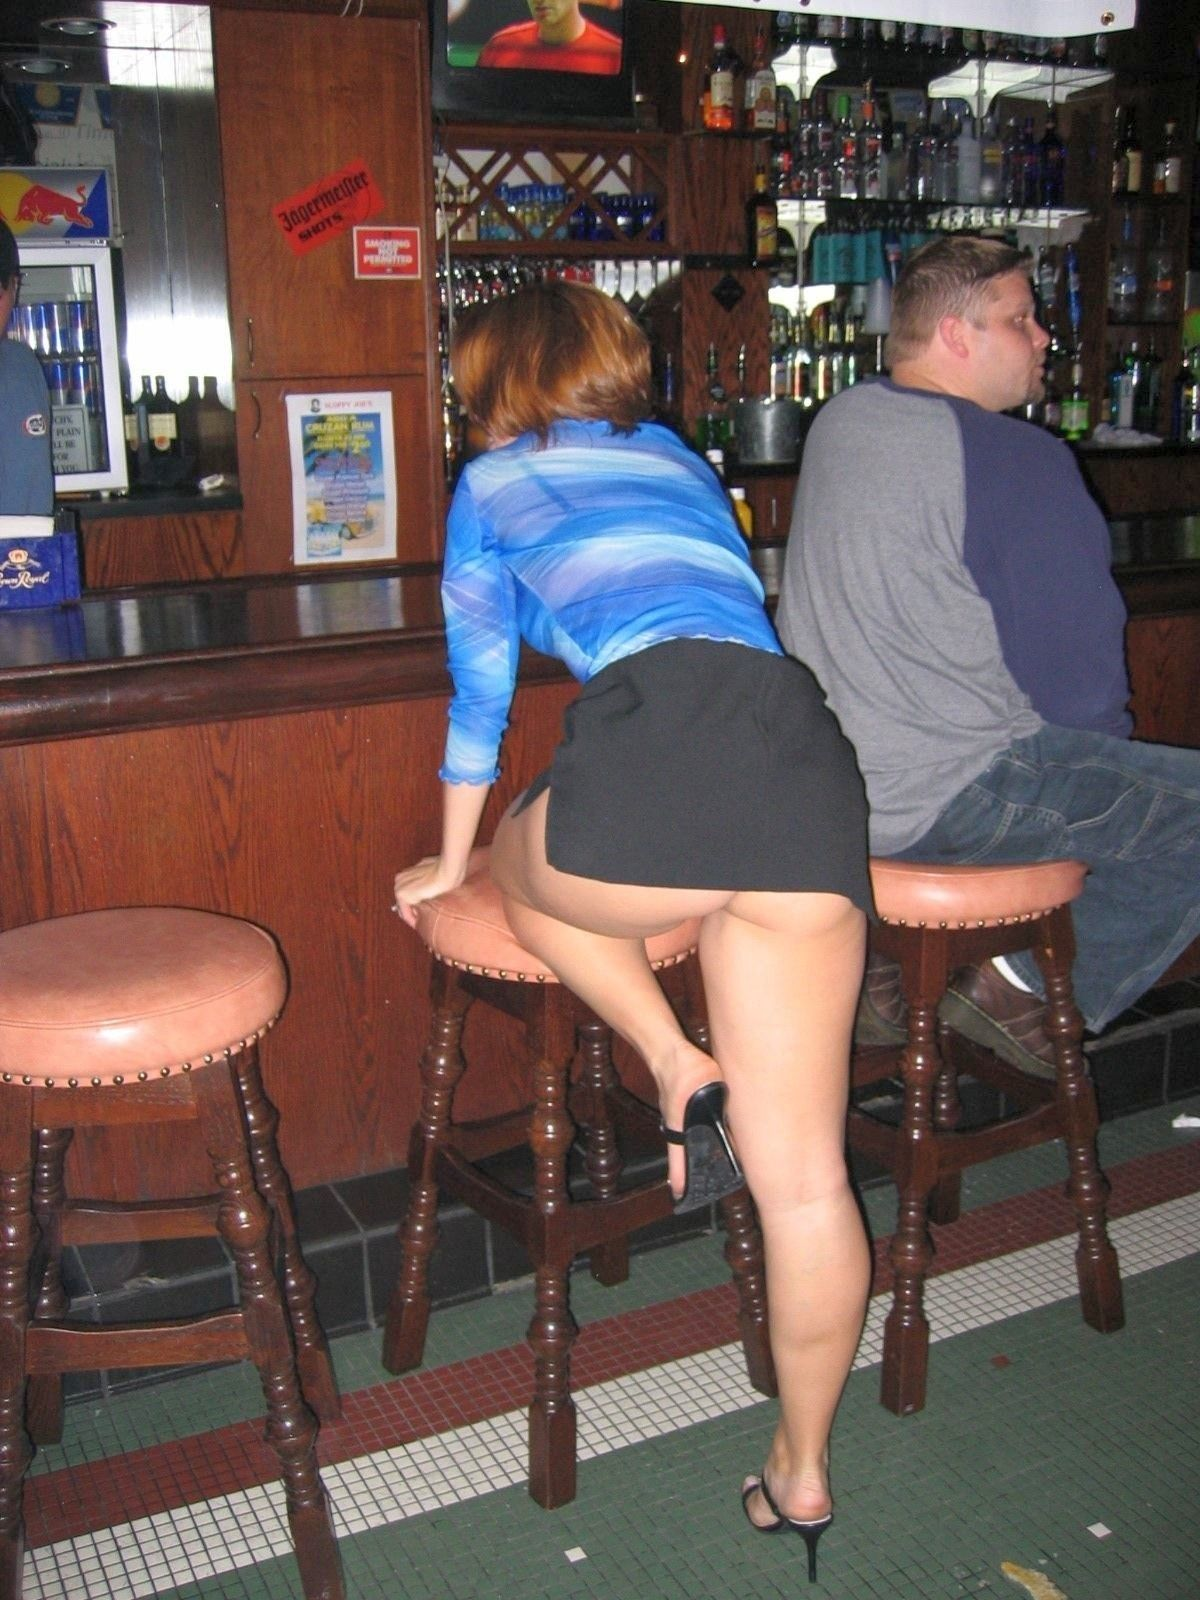 milf upskirt in bar | hot mature ladies, milfs and gilfs | pinterest